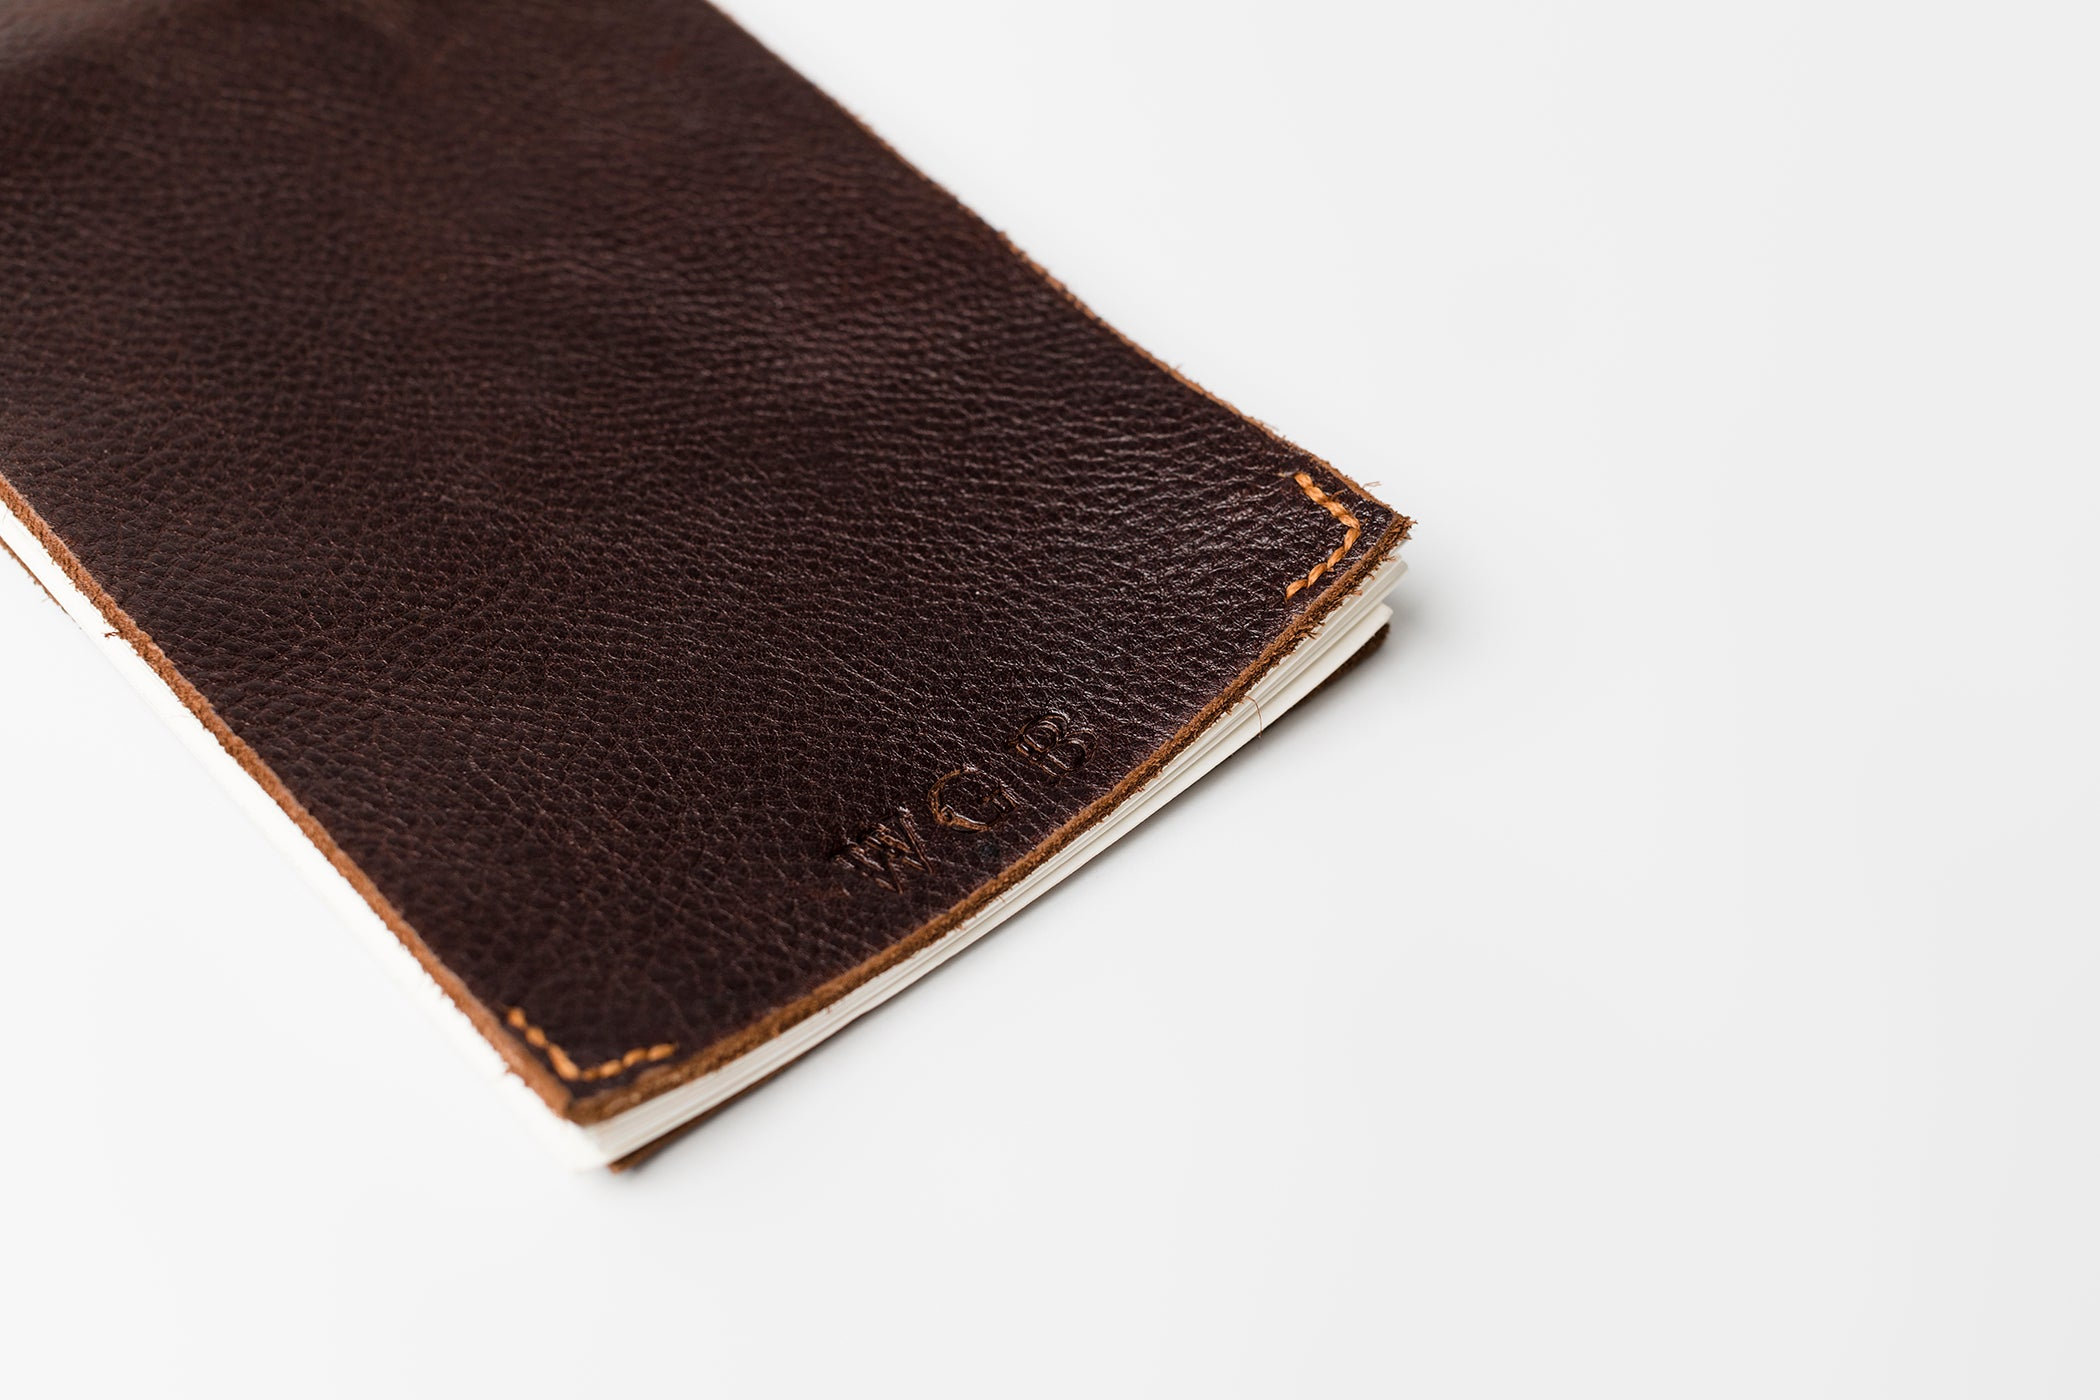 Leather Folio for Calendar